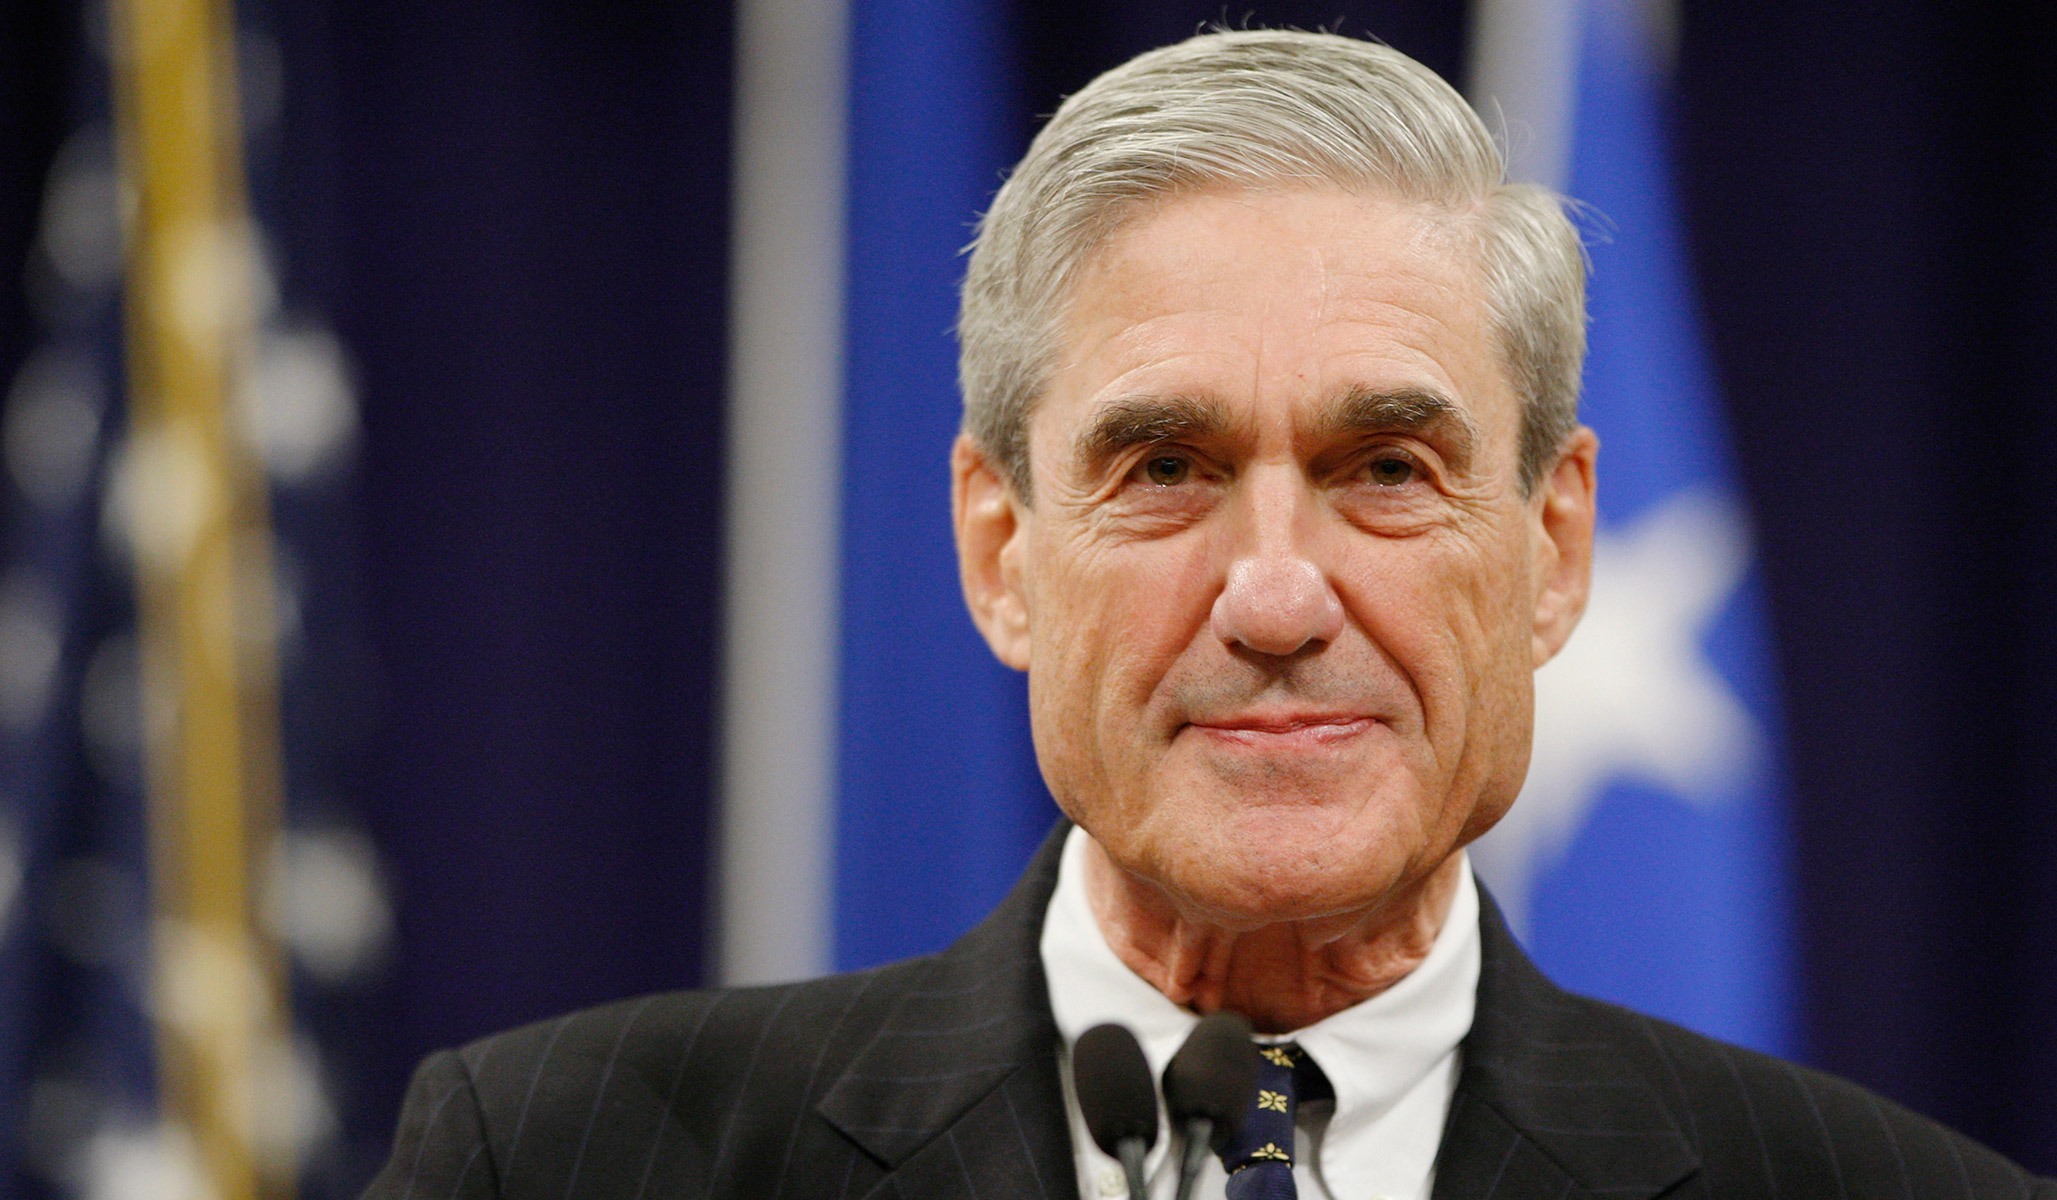 nationalreview.com - David French - Robert Mueller Russian Hacker Indictment: 'Witches' Are Real